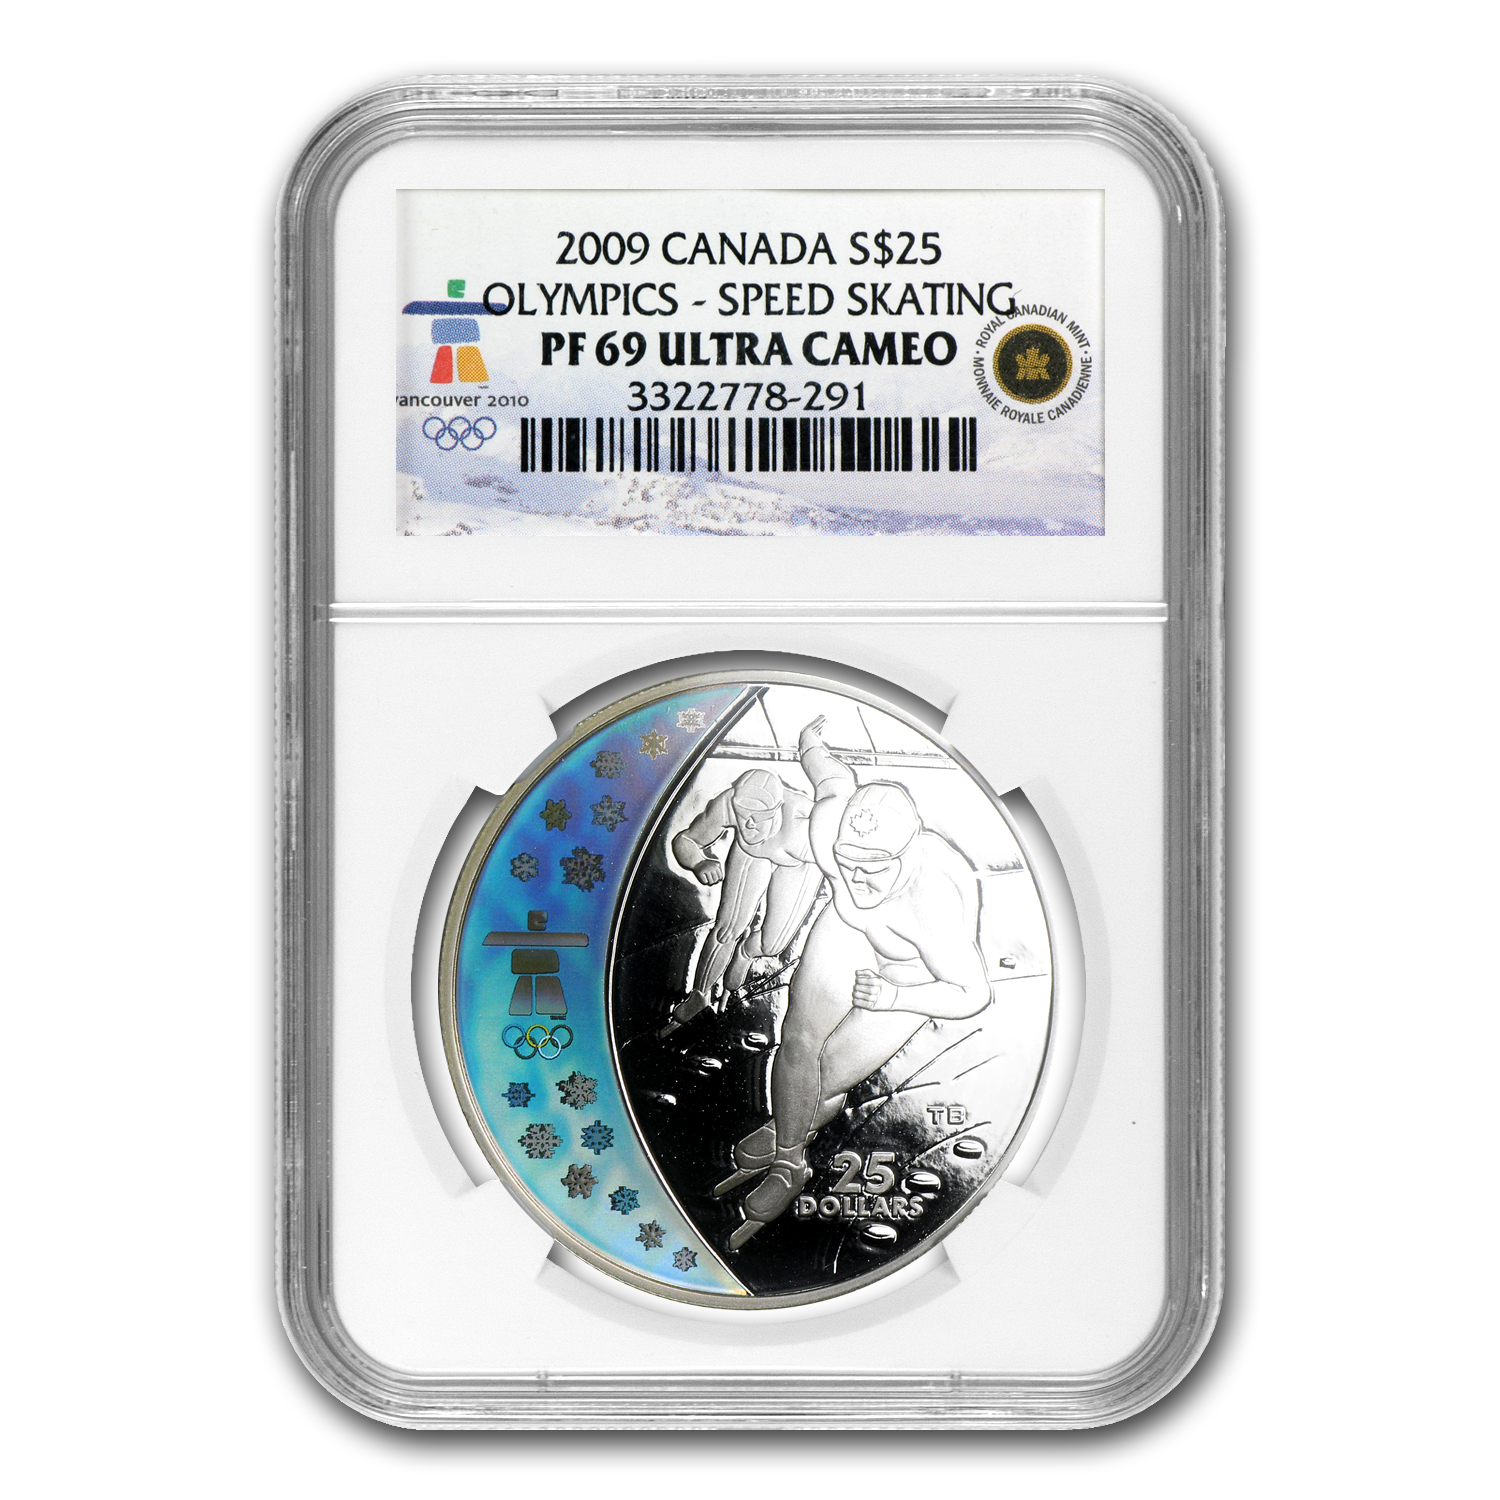 2009 Canada Silver $25 Olympic Speed Skating PF-69 NGC Ult Cam